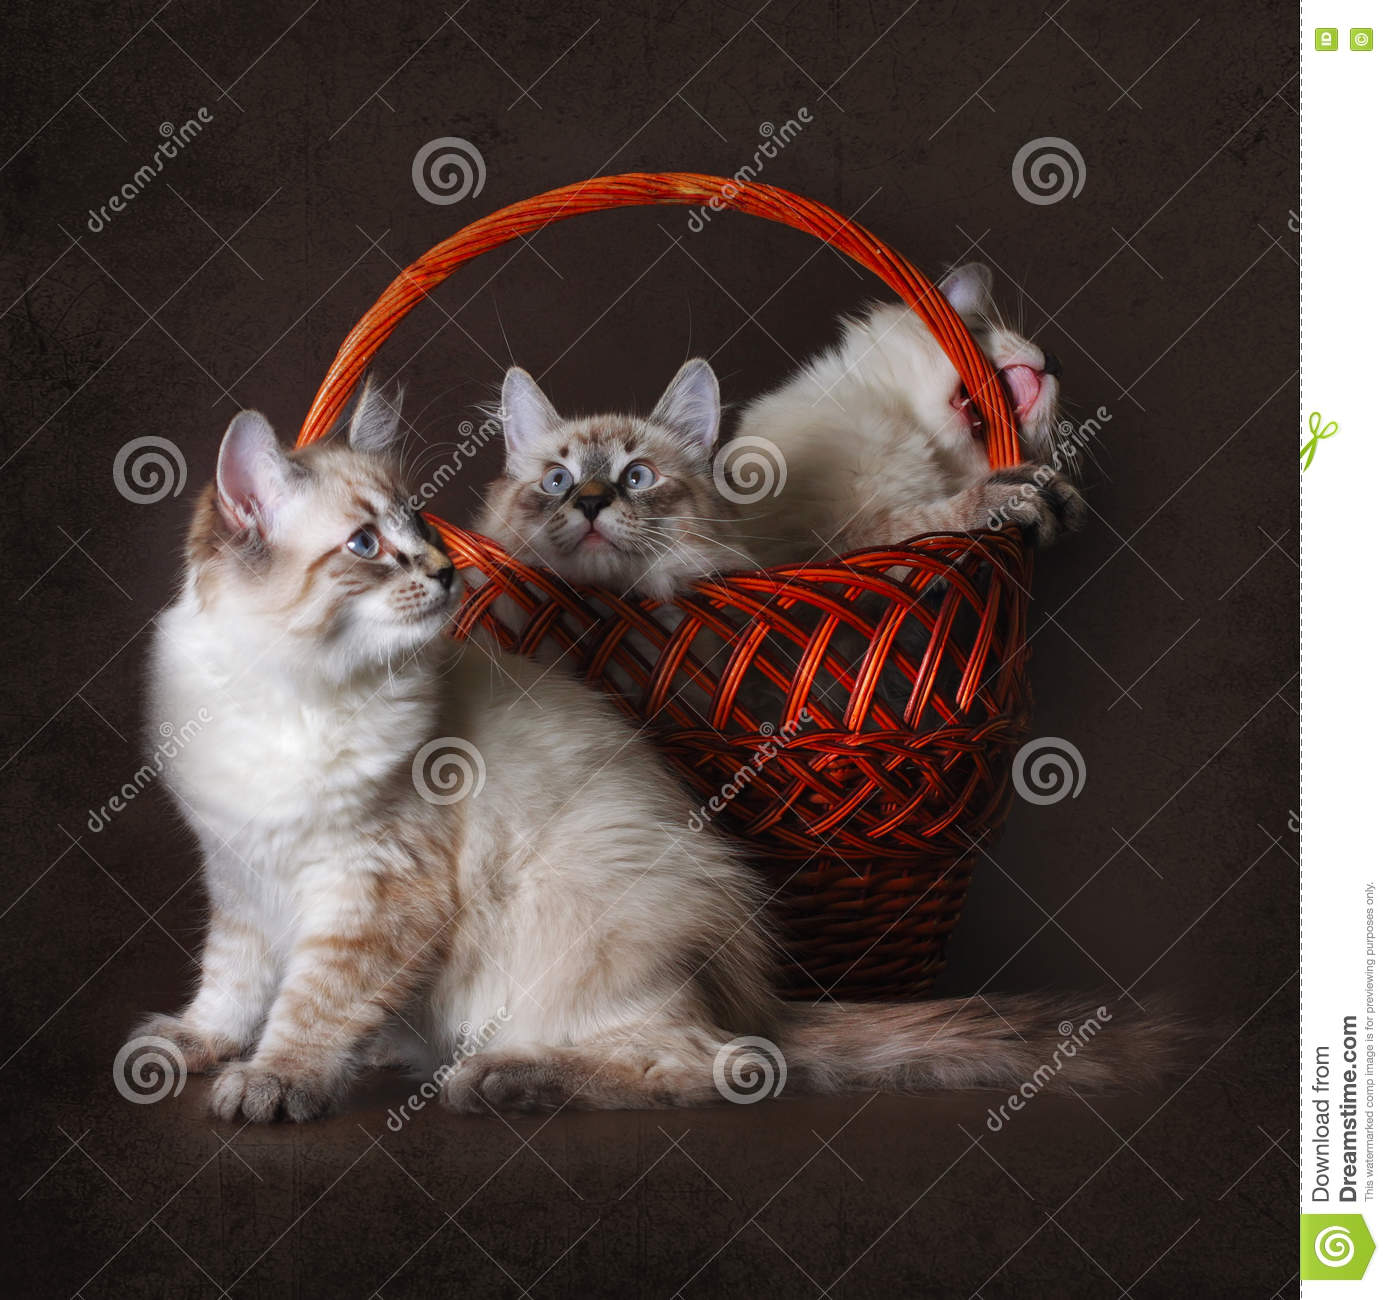 three beautiful cat breed Neva masquerade is played with a basket on a brown background